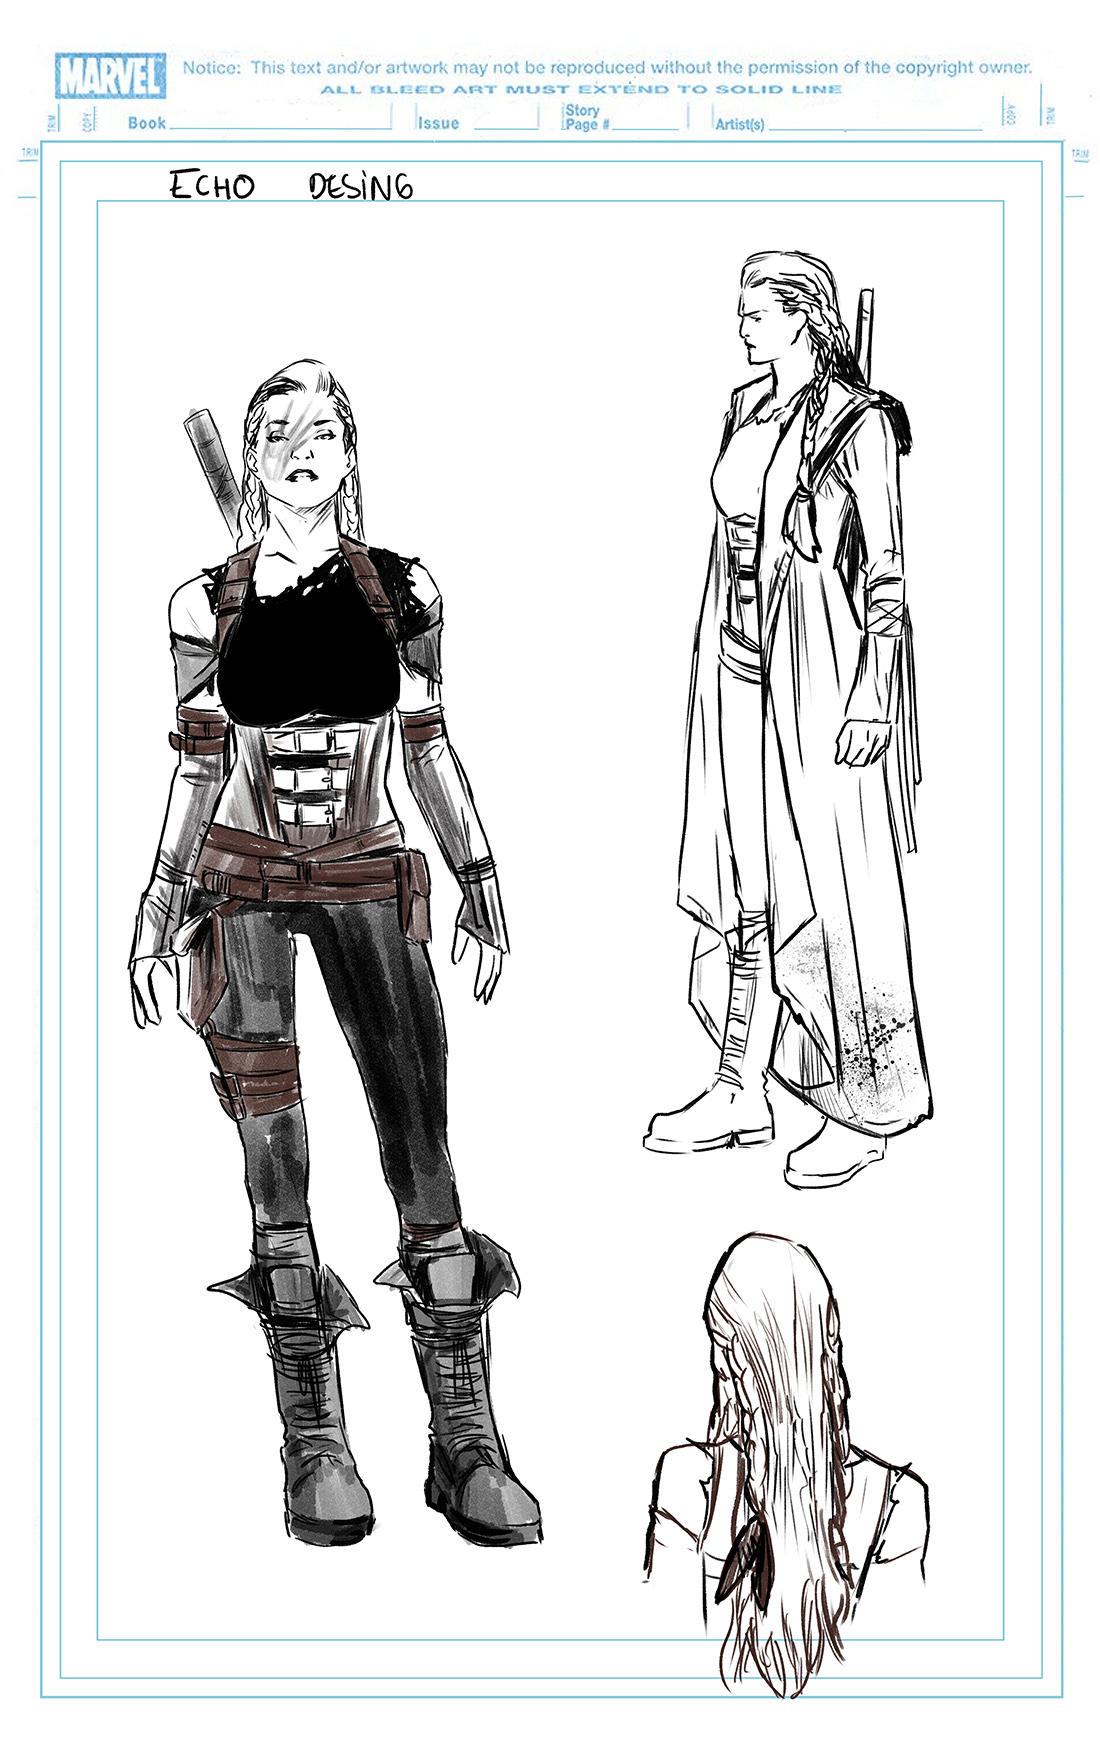 CAPTAIN MARVEL #2: Echo design by Carmen Carnero